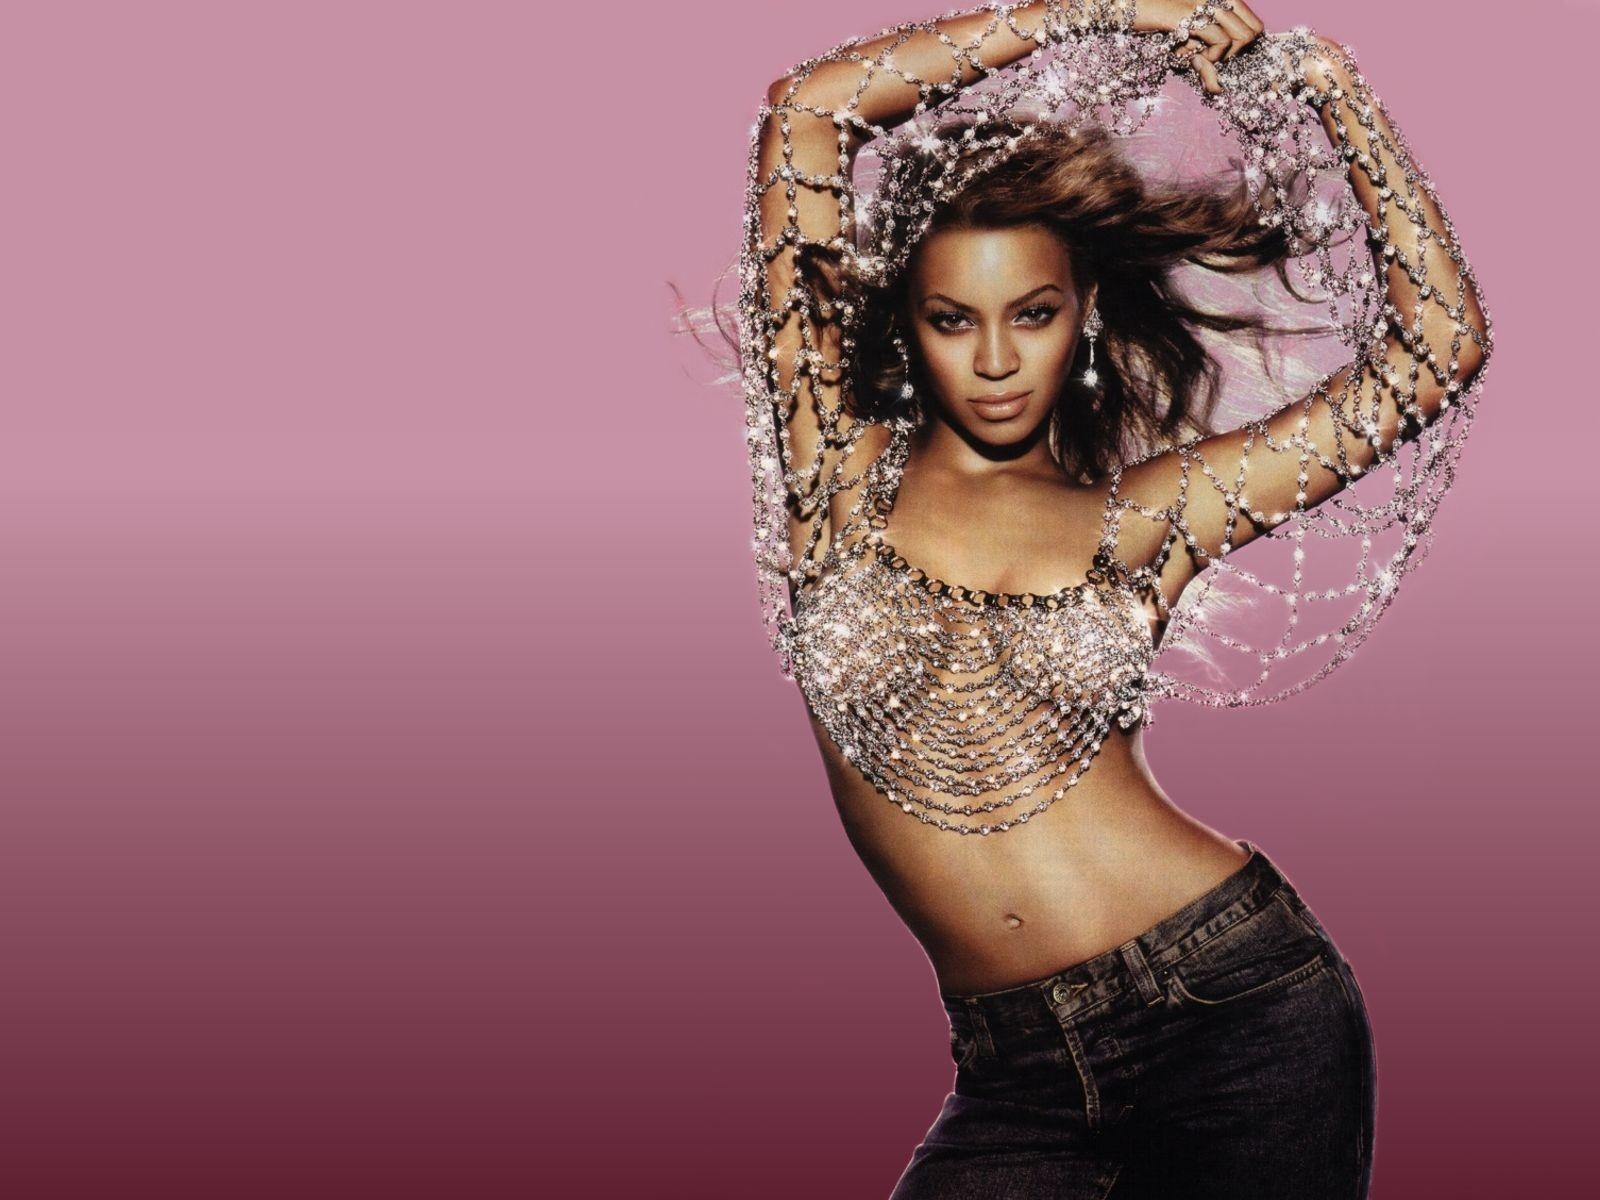 Wallpaper di Beyoncé Knowles 6